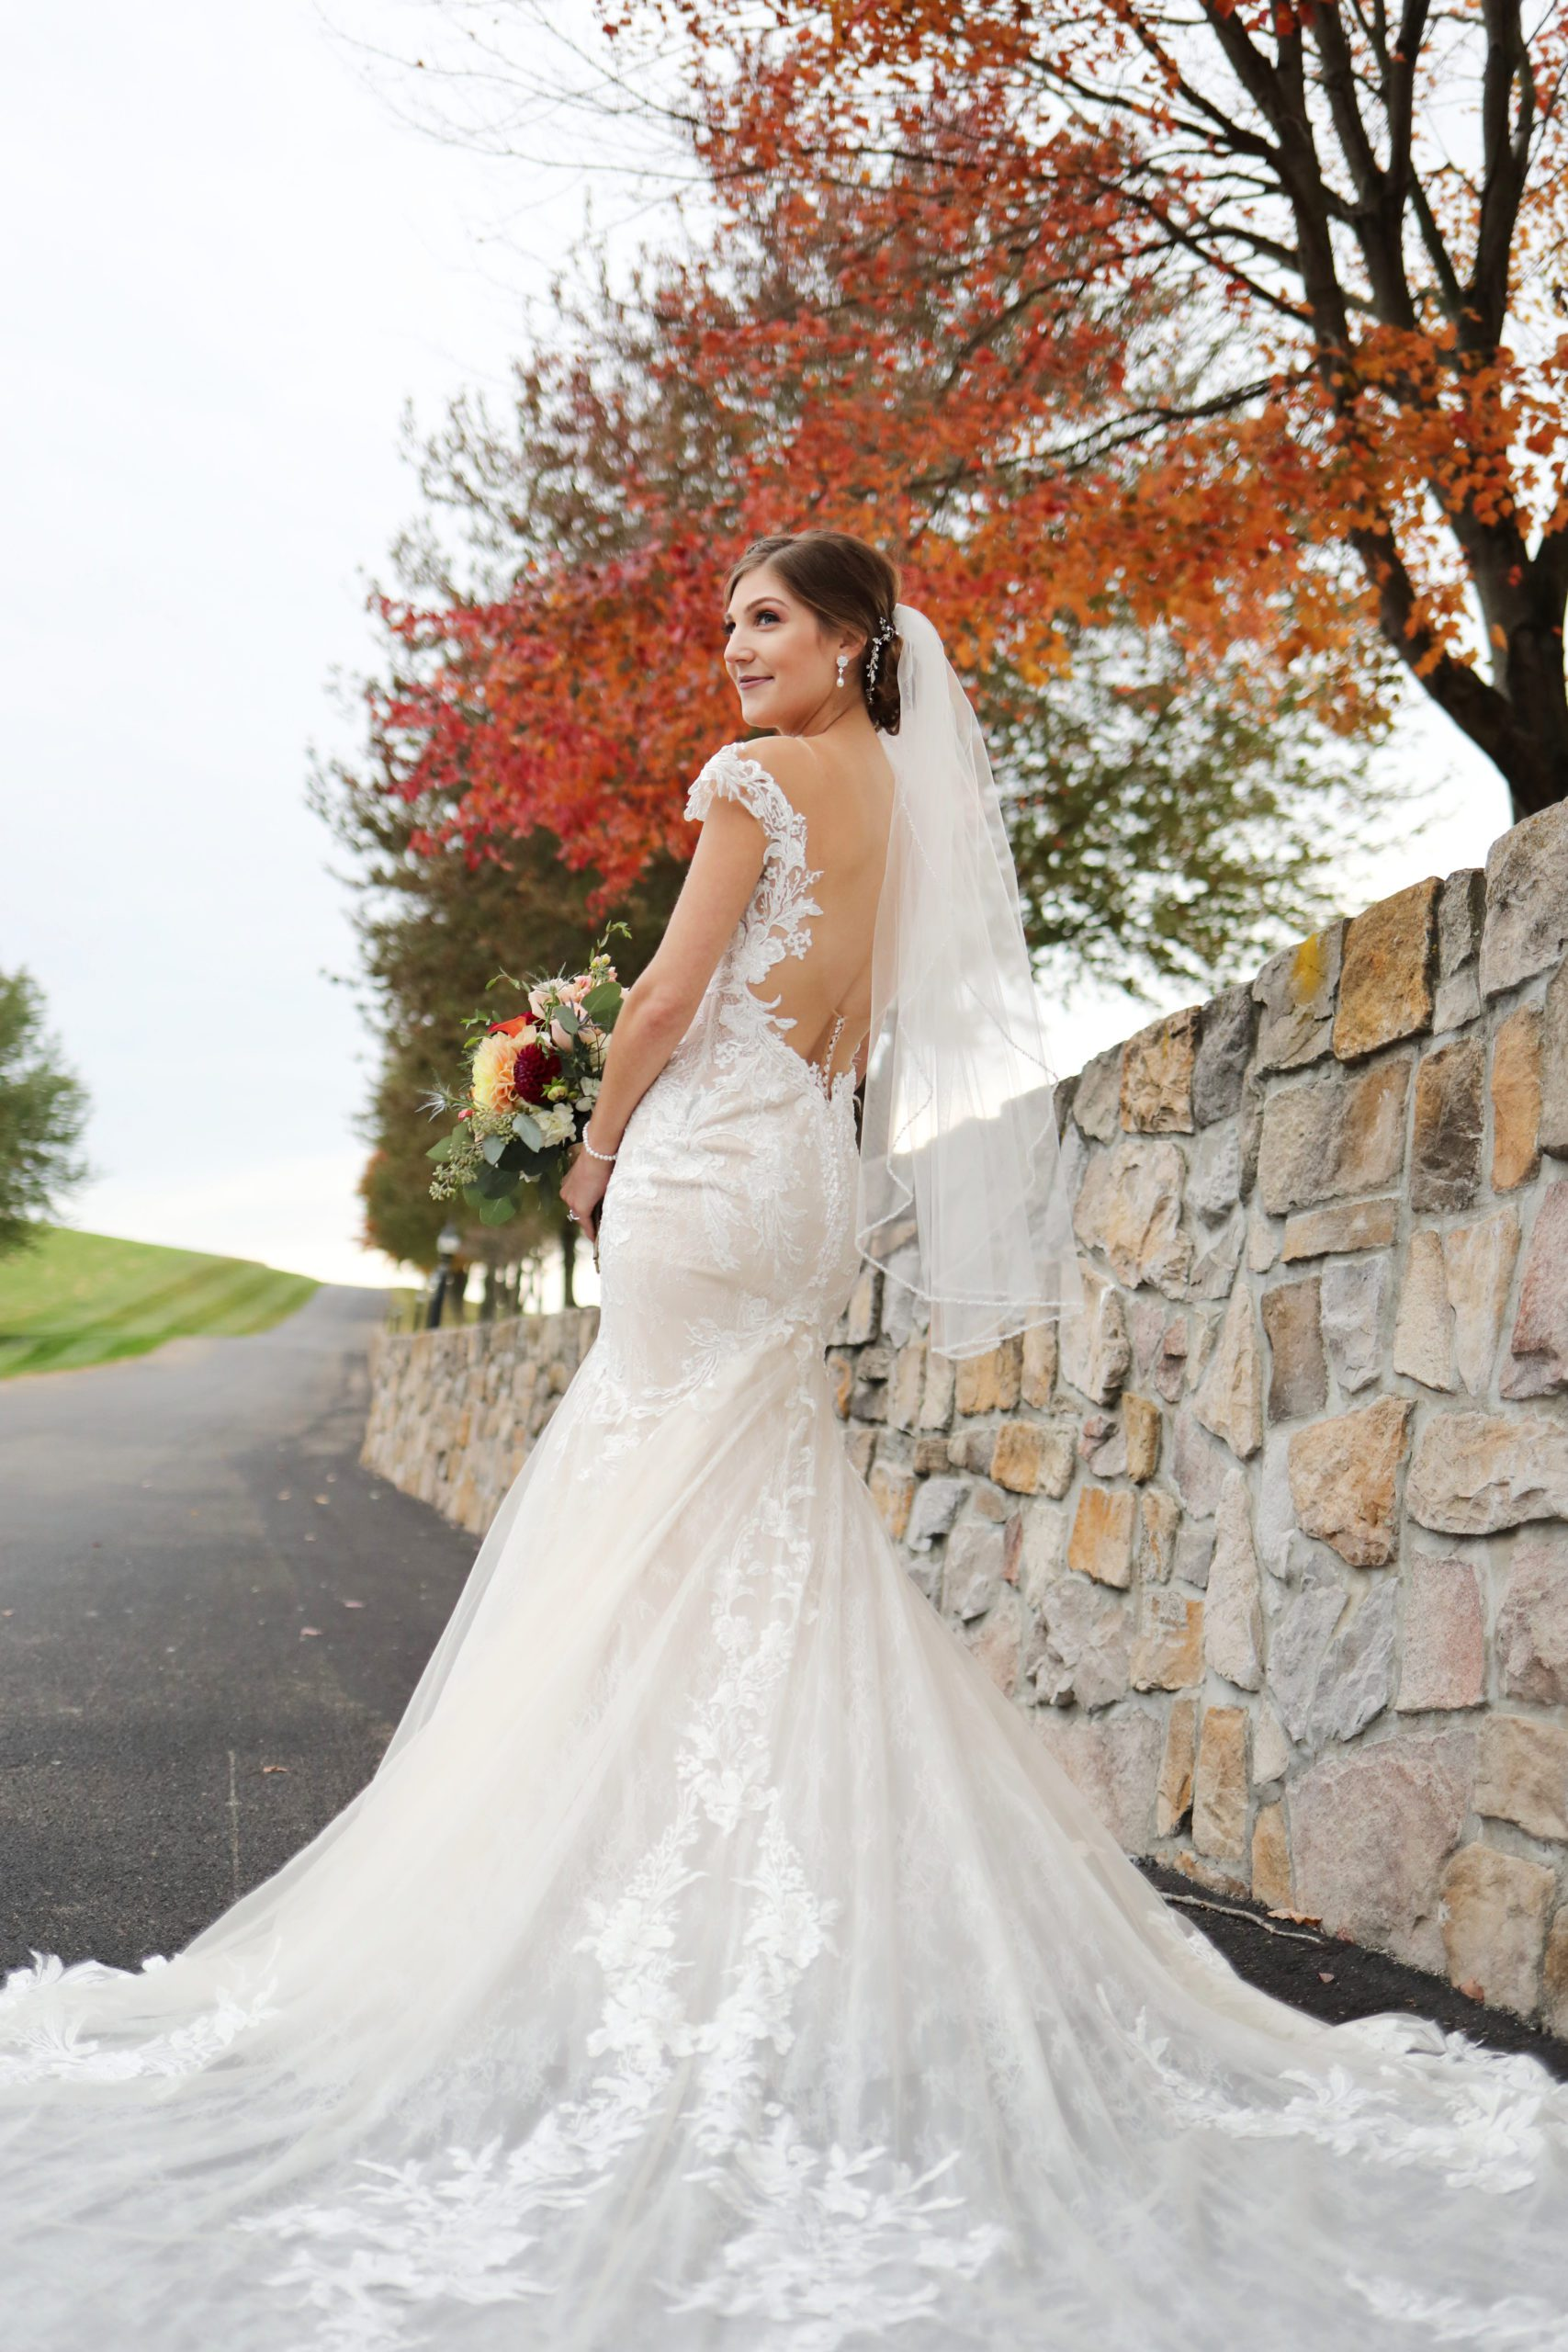 Bride stands by stone wall at Morningside Inn Wedding venue in frederick private estate